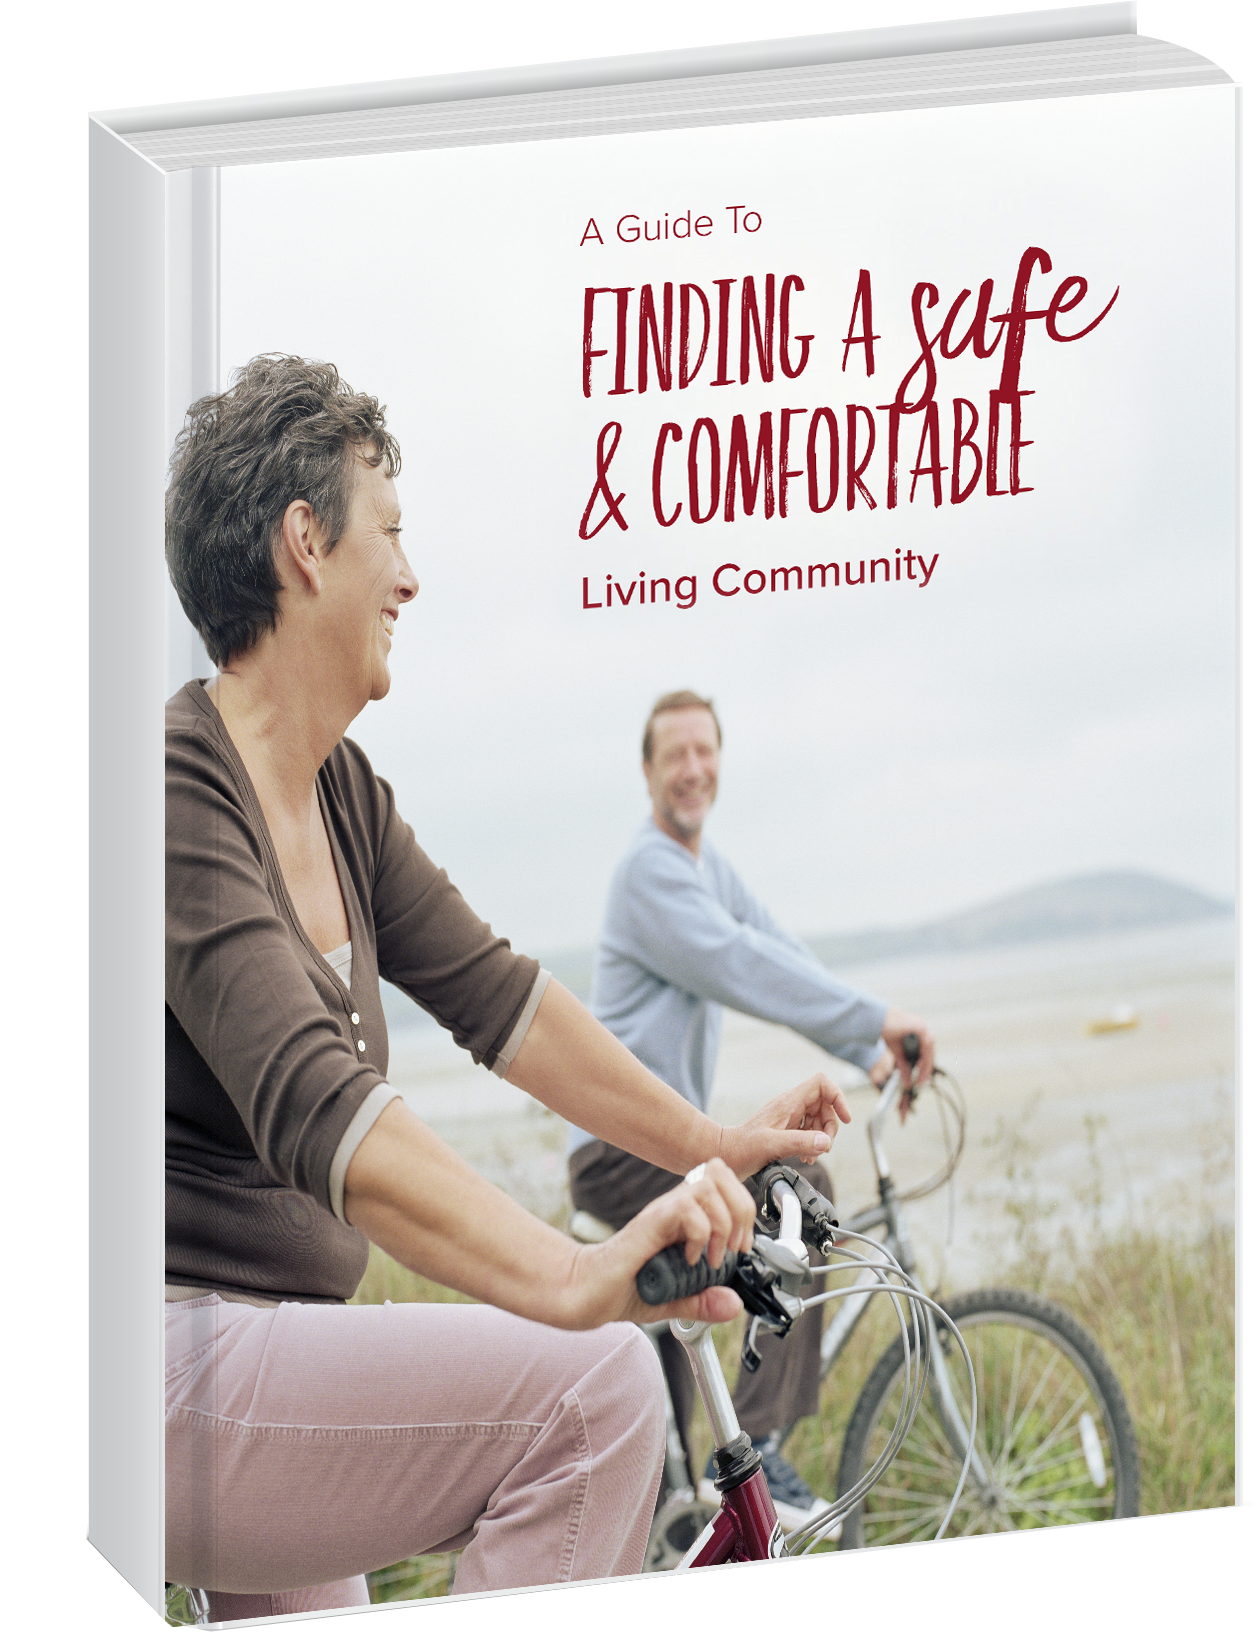 guide-to-finding-a-safe-and-comfortable-living-community